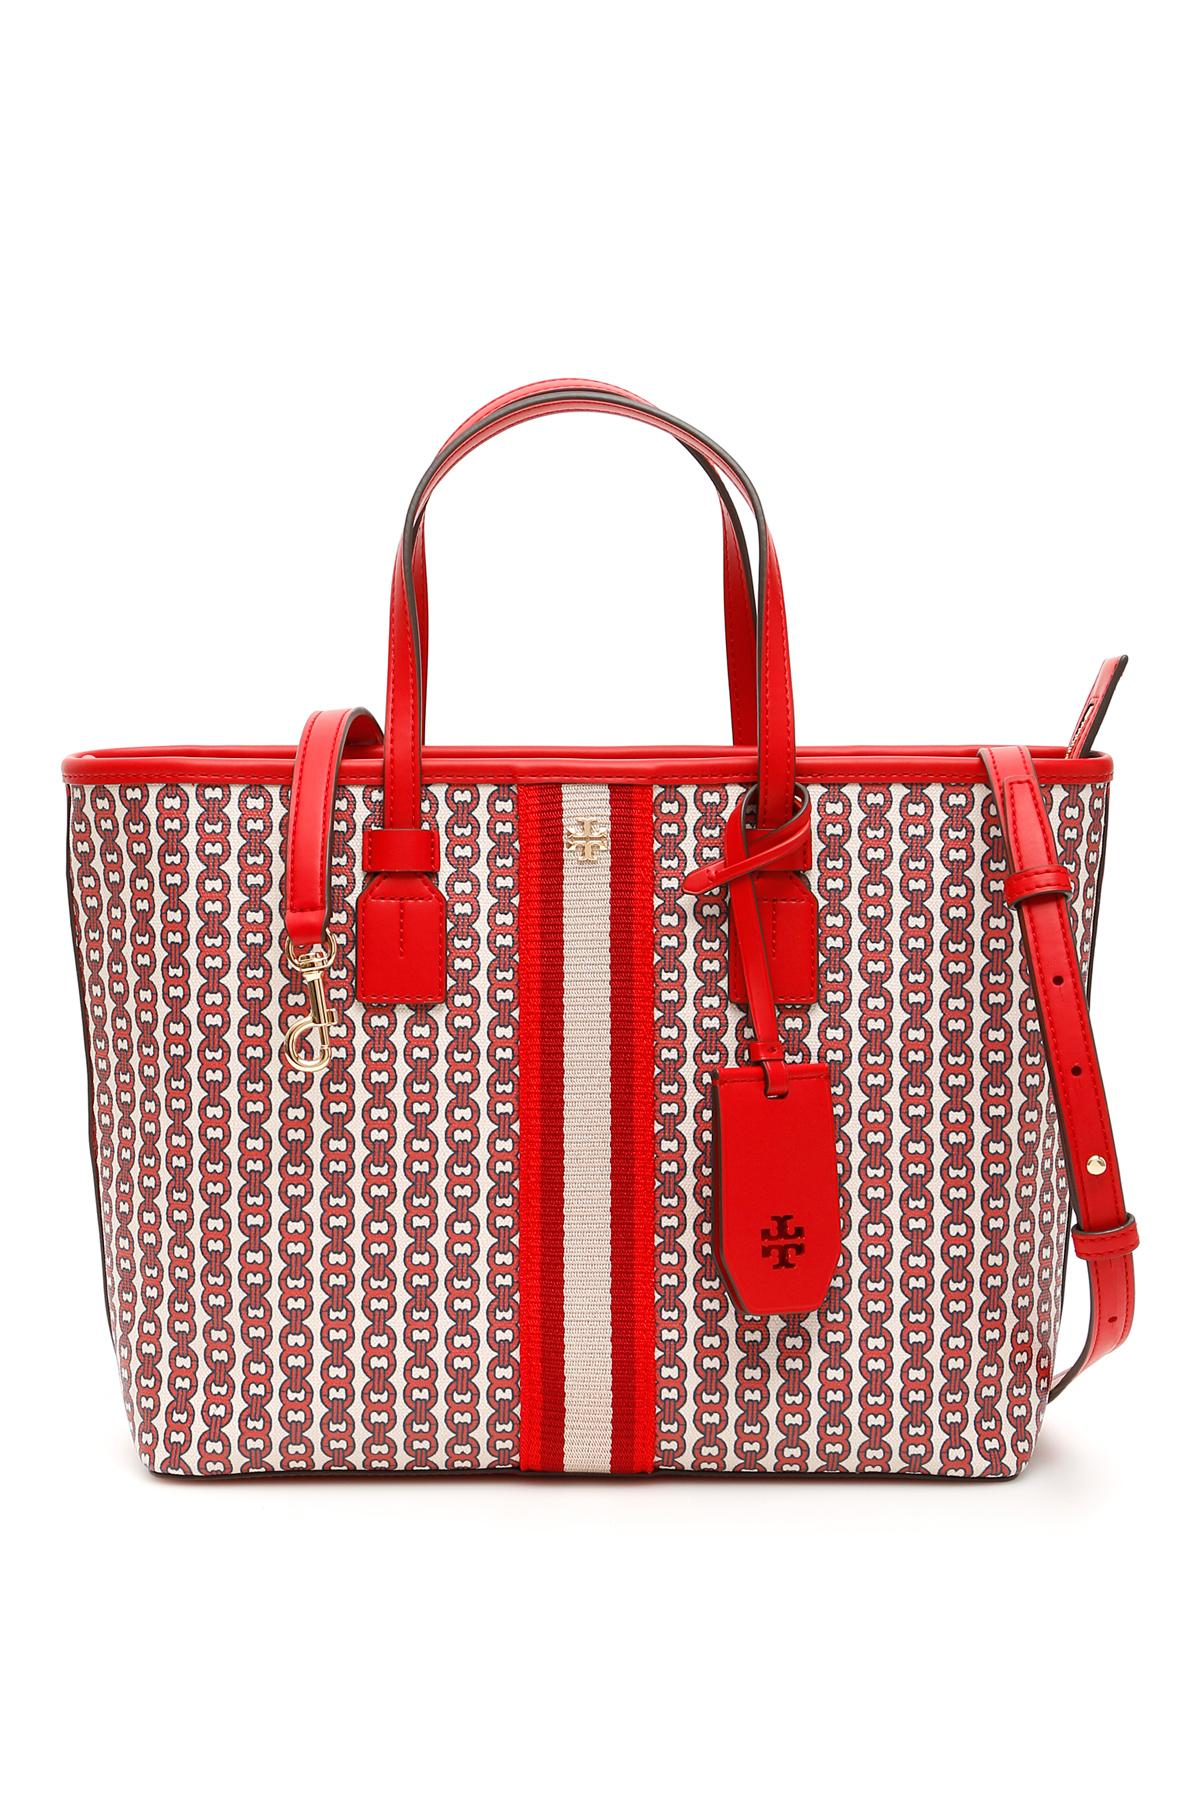 a995c164f6d Buy Luxury Tote bags Online | Backpack | Lazada